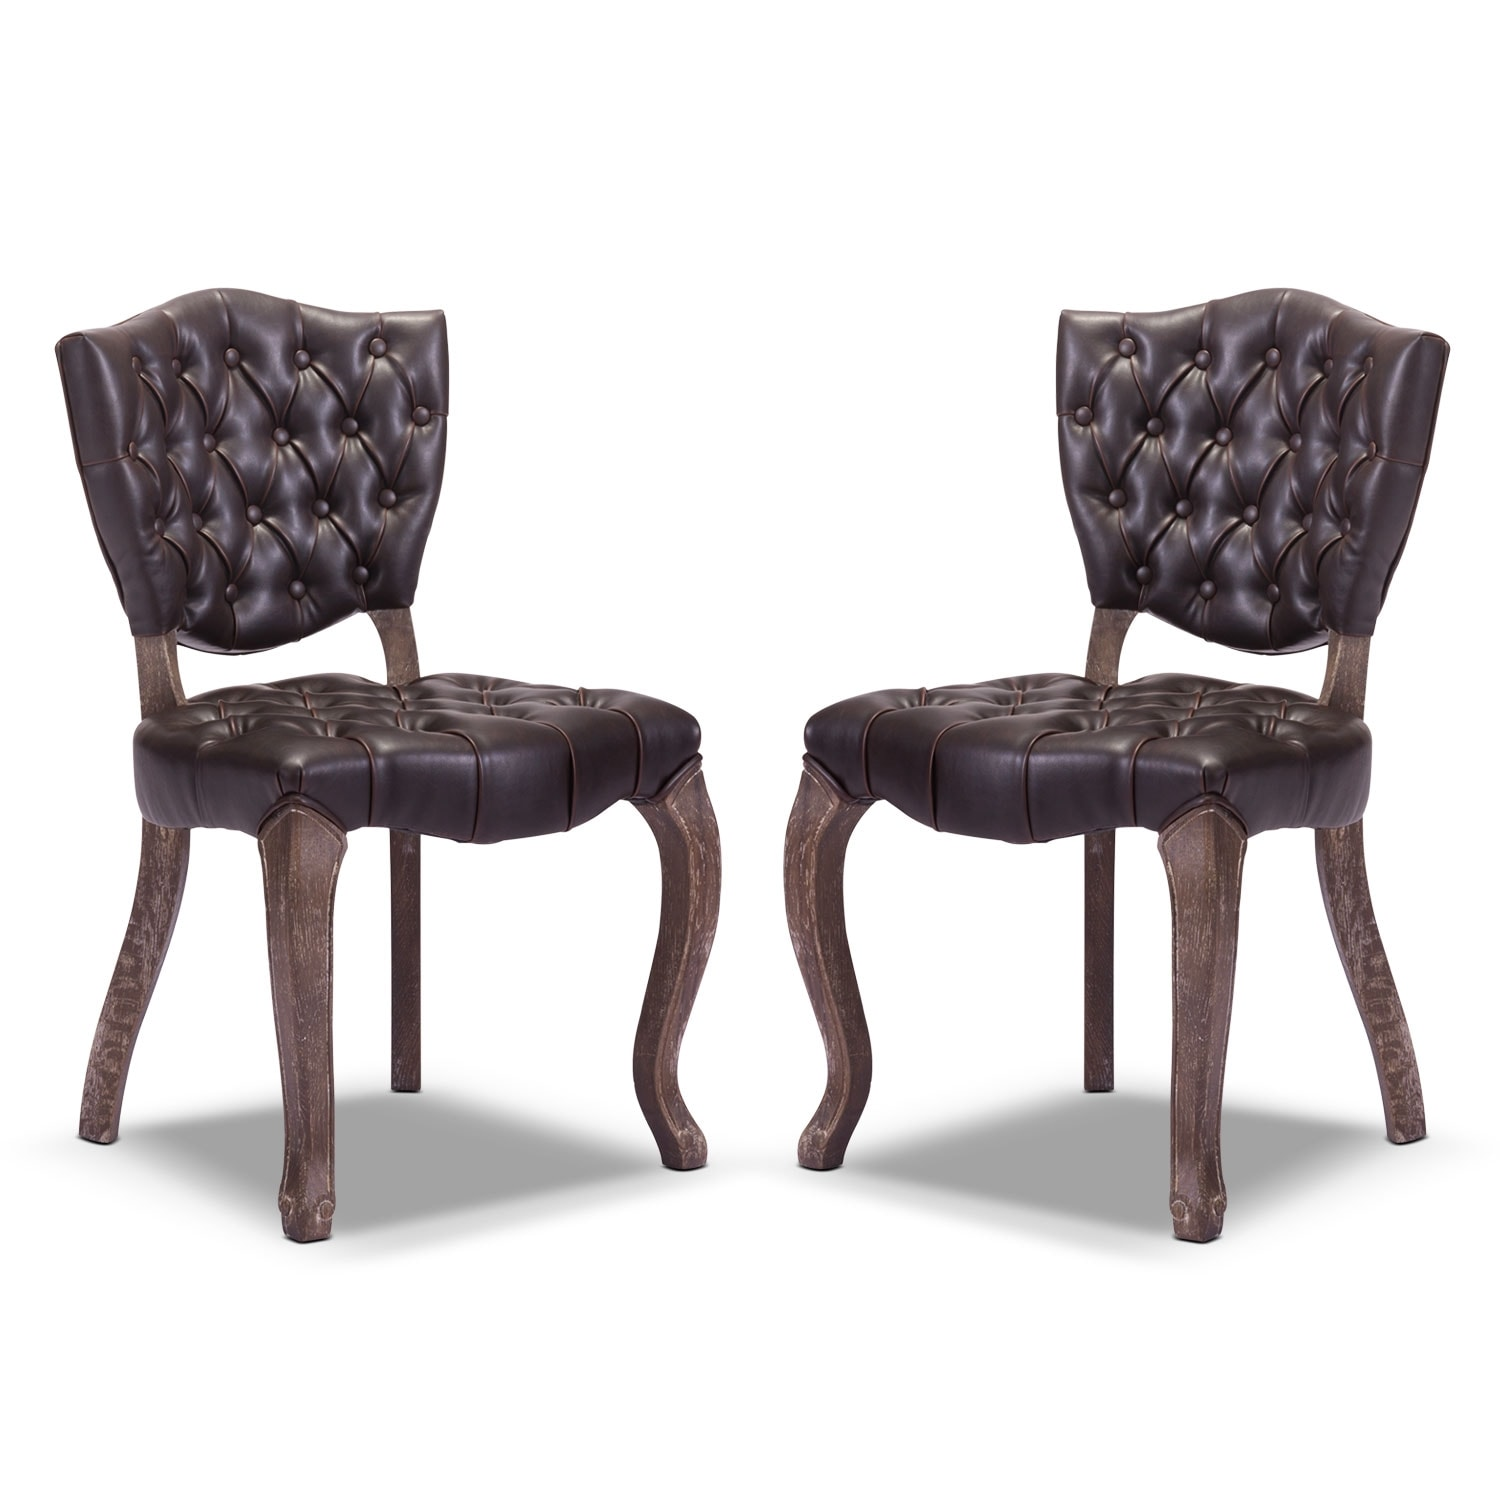 Awesome Shield 2 Pack Chairs   Brown